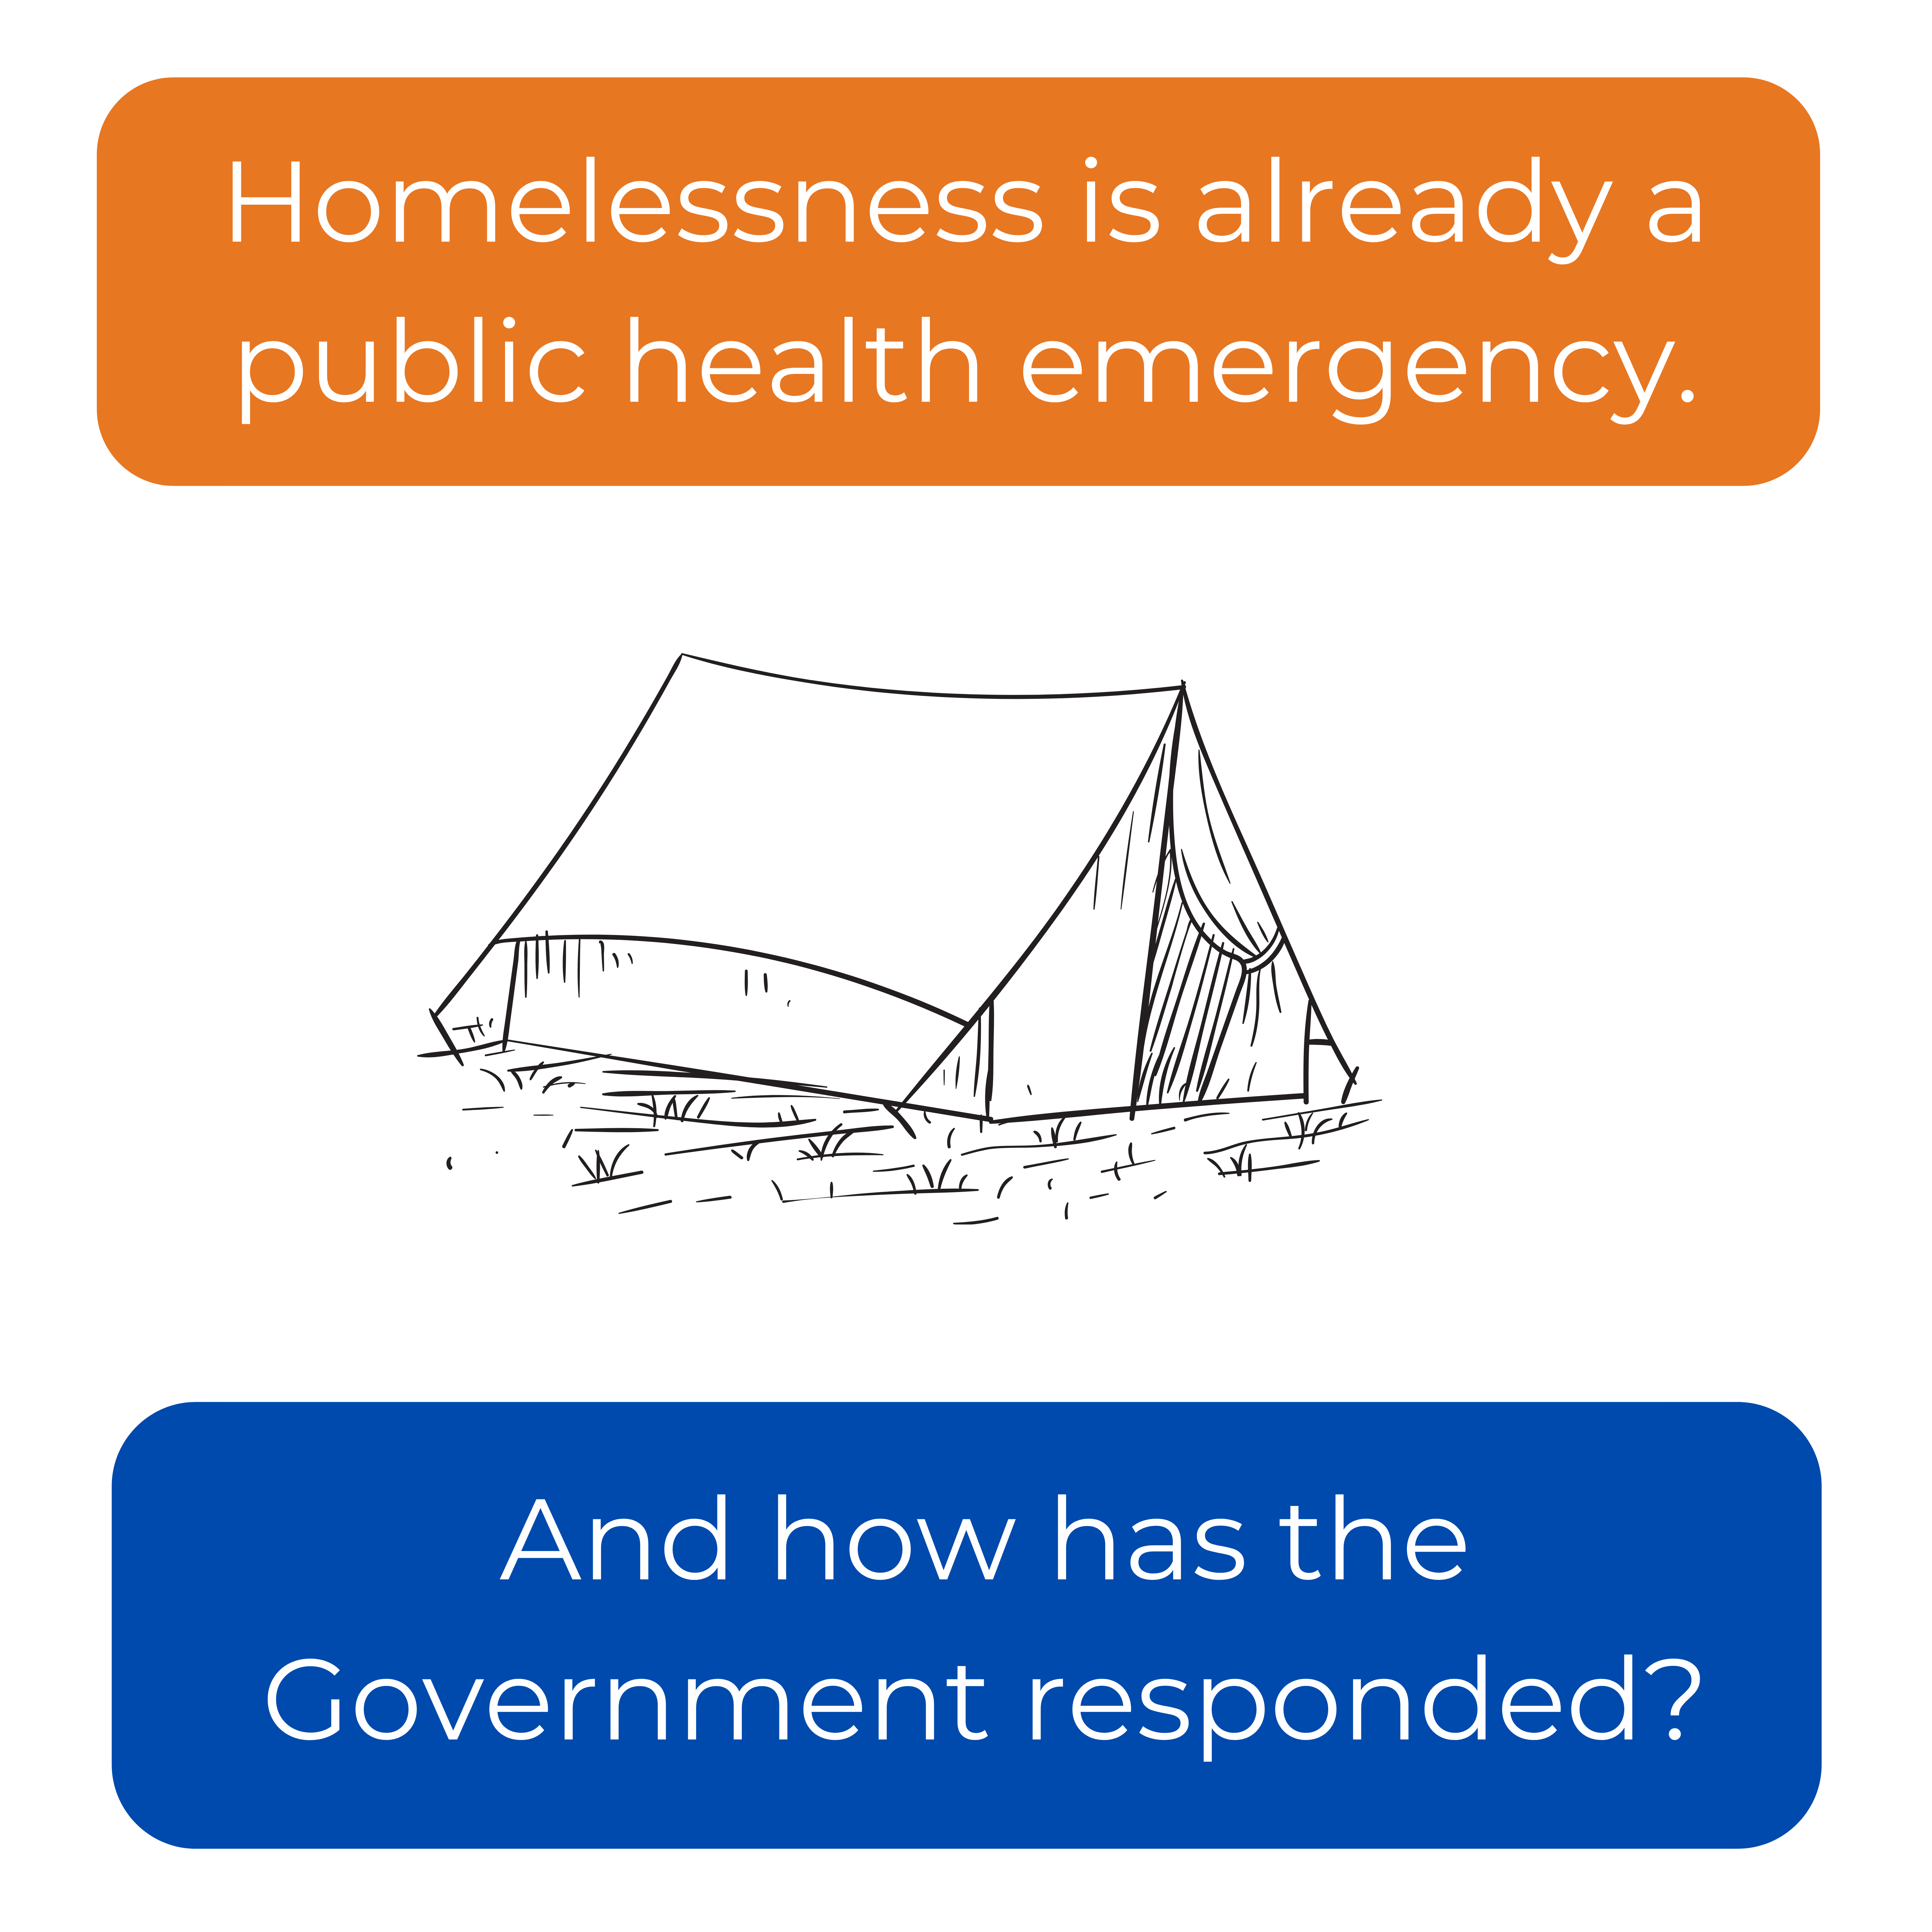 Homelessness is already a public health emergency. And how has the Government responded?